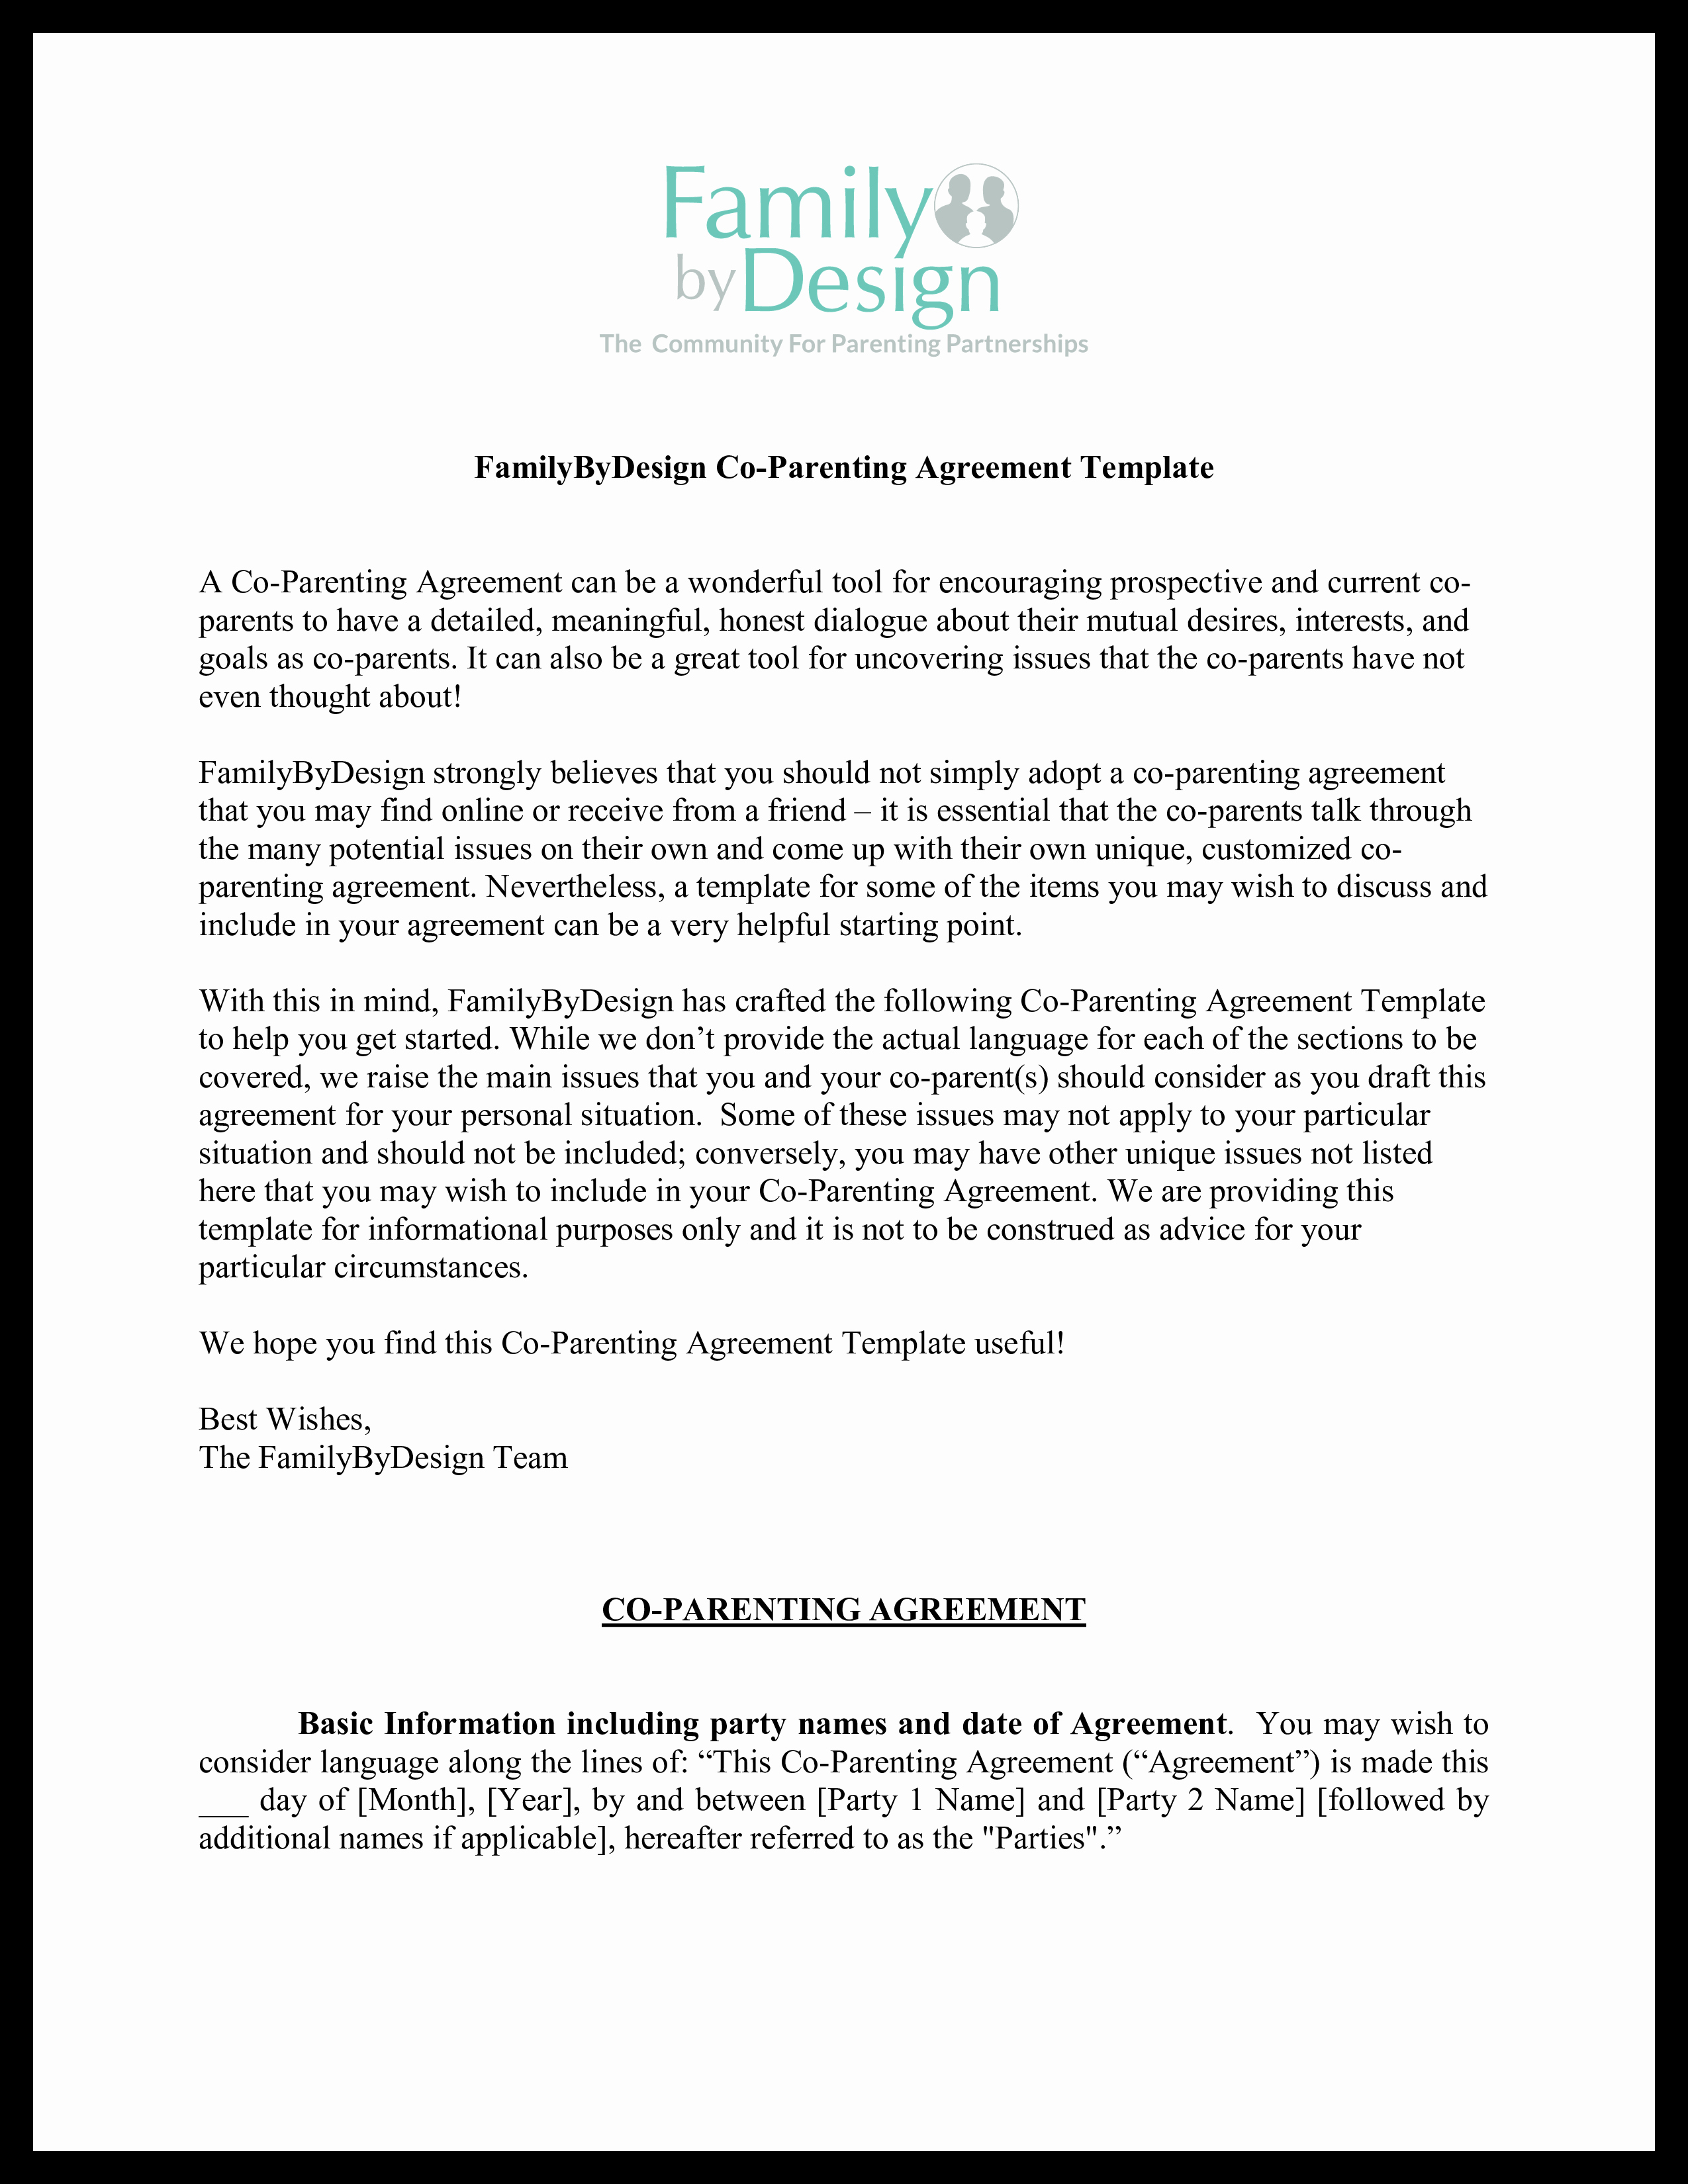 Parenting Agreement Template Free Fresh Co Parenting Agreement